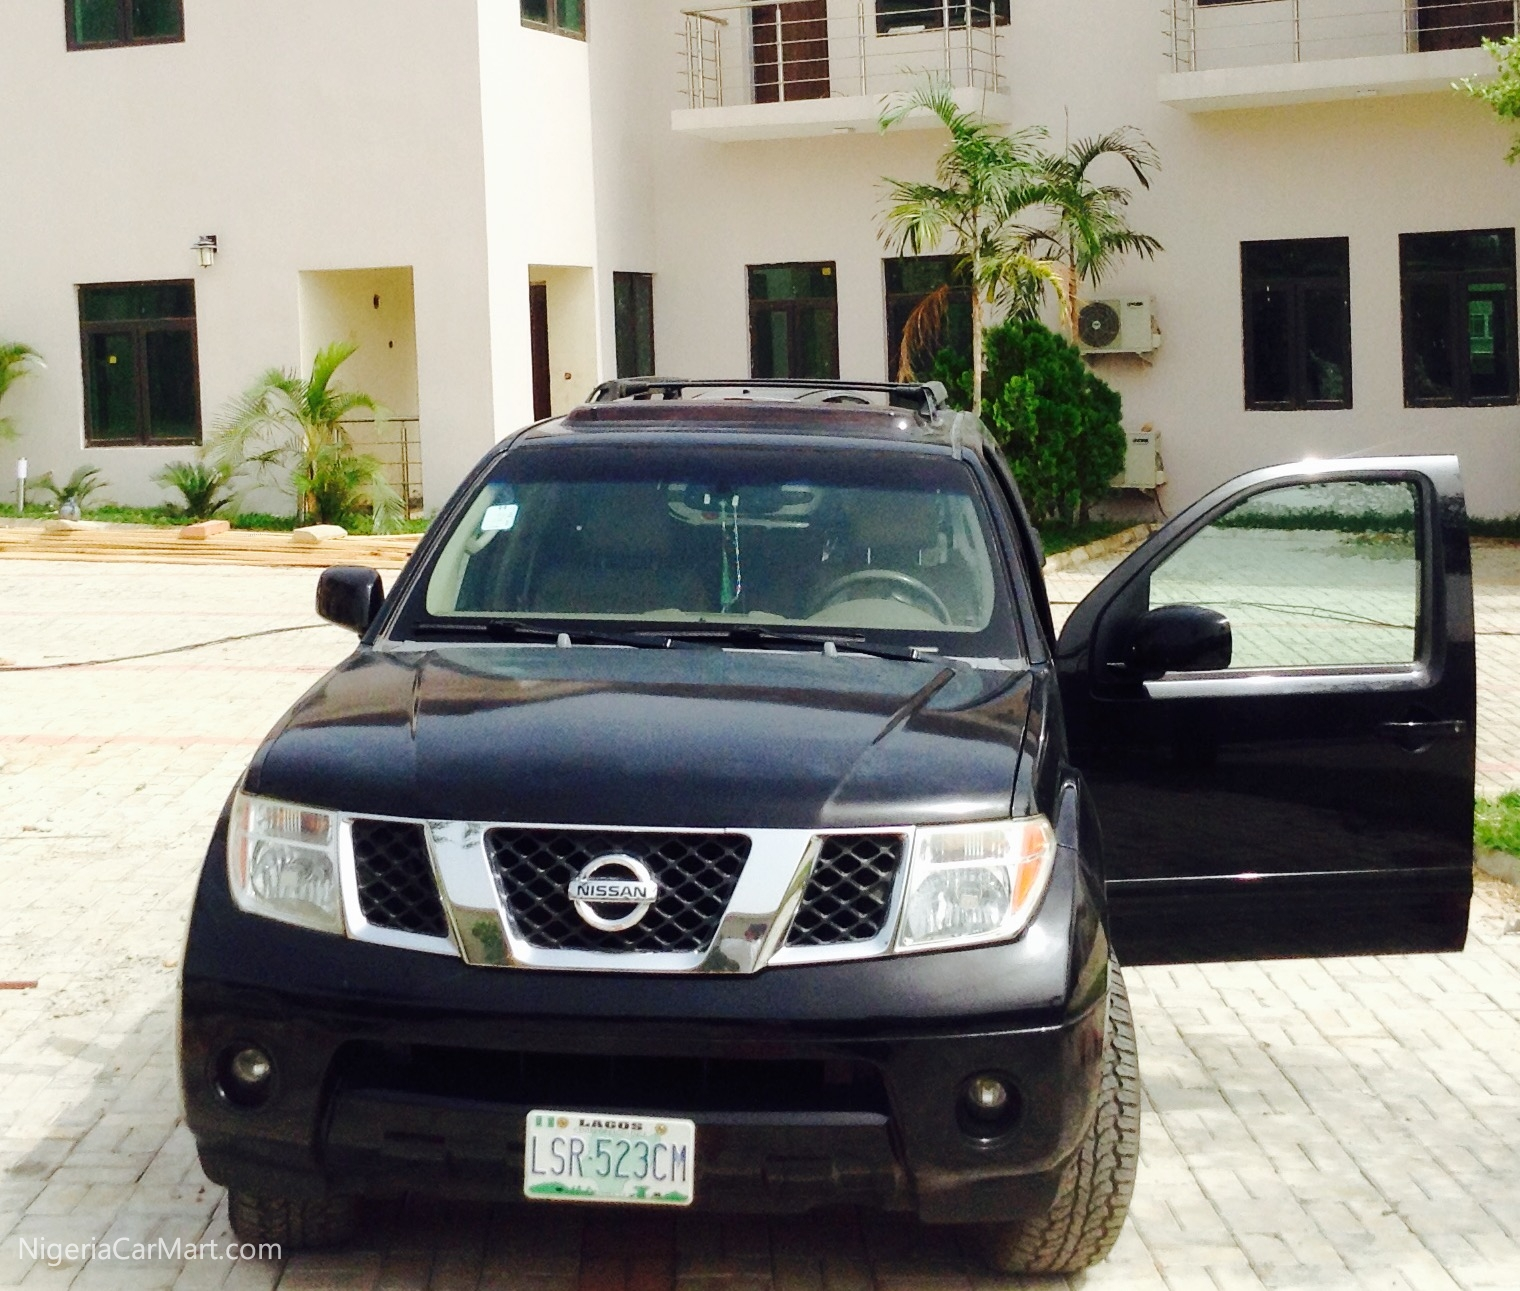 trail x nissan for new auto review pathfinder cars suv sale trader used